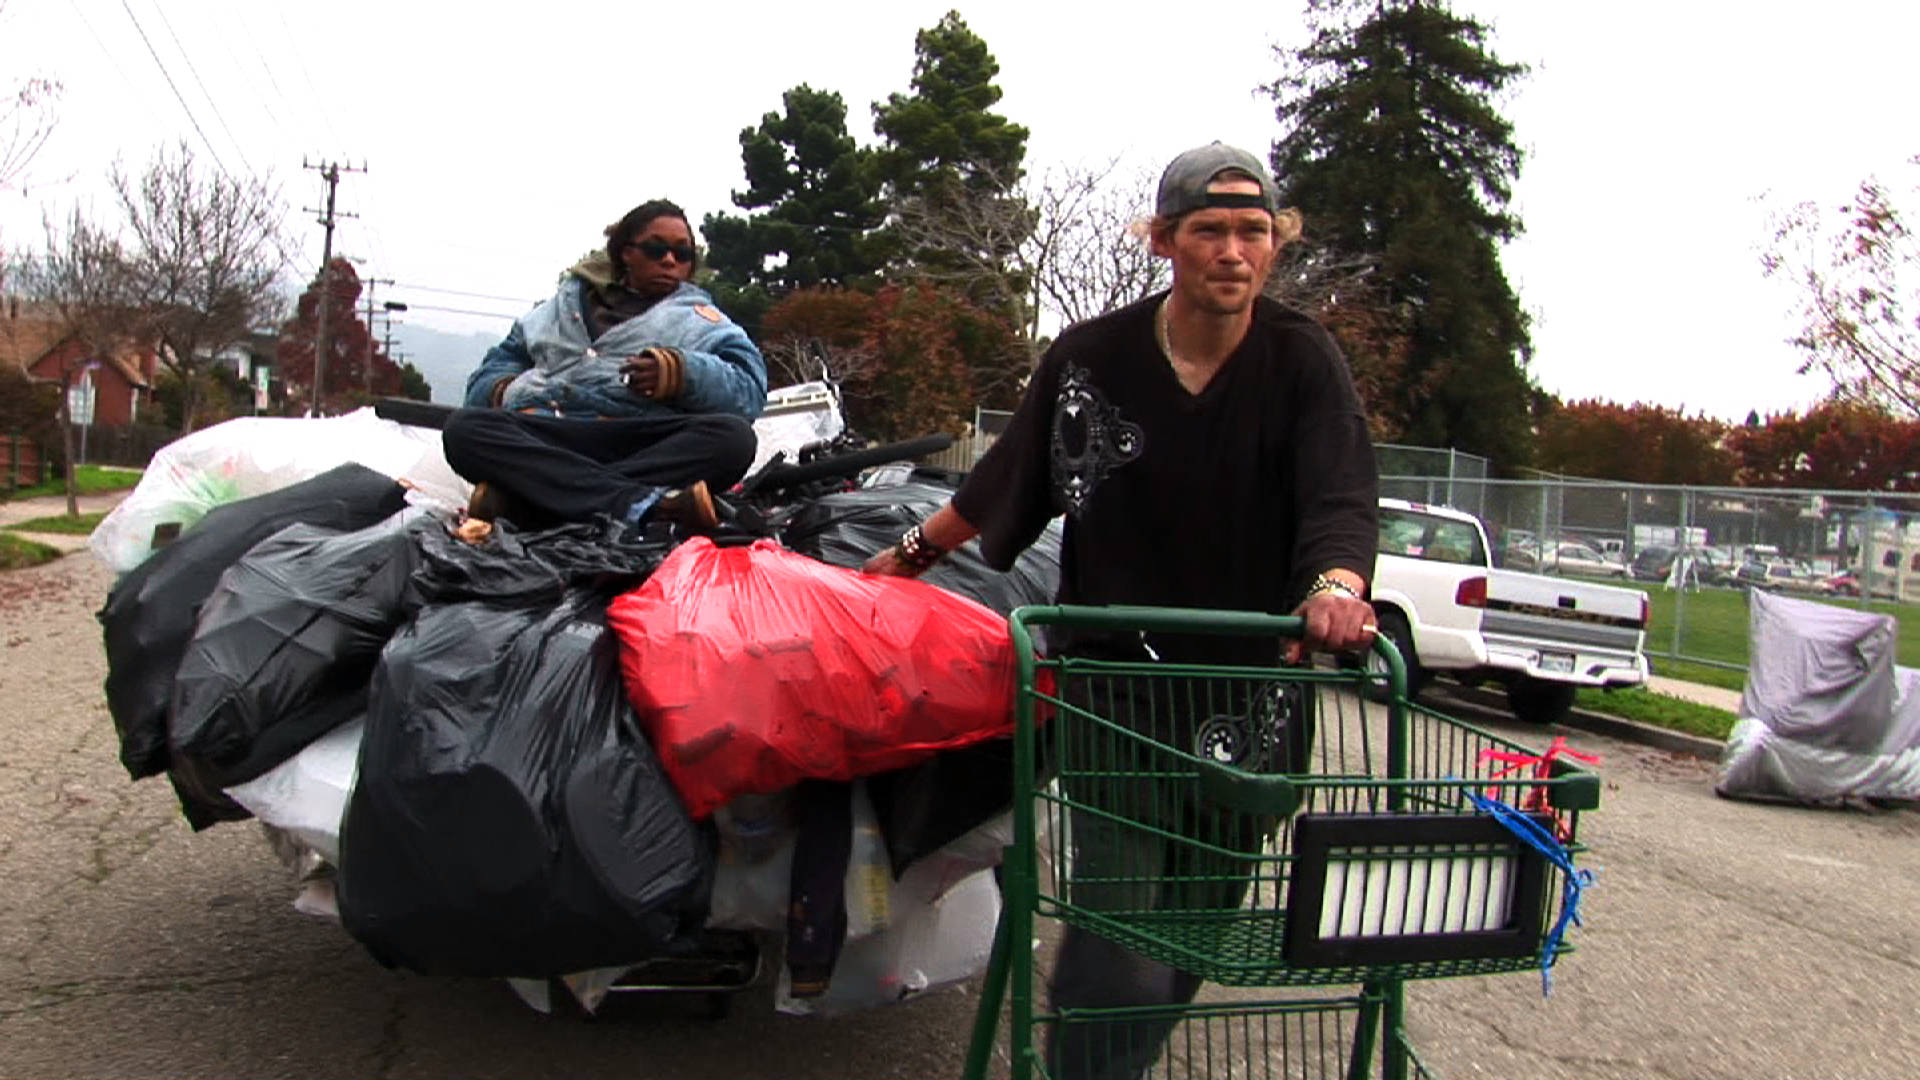 Jason Witt (right), the Olympic champion of recycling, hauls a shopping cart with his girlfriend, Heather Holloman (left), on top.